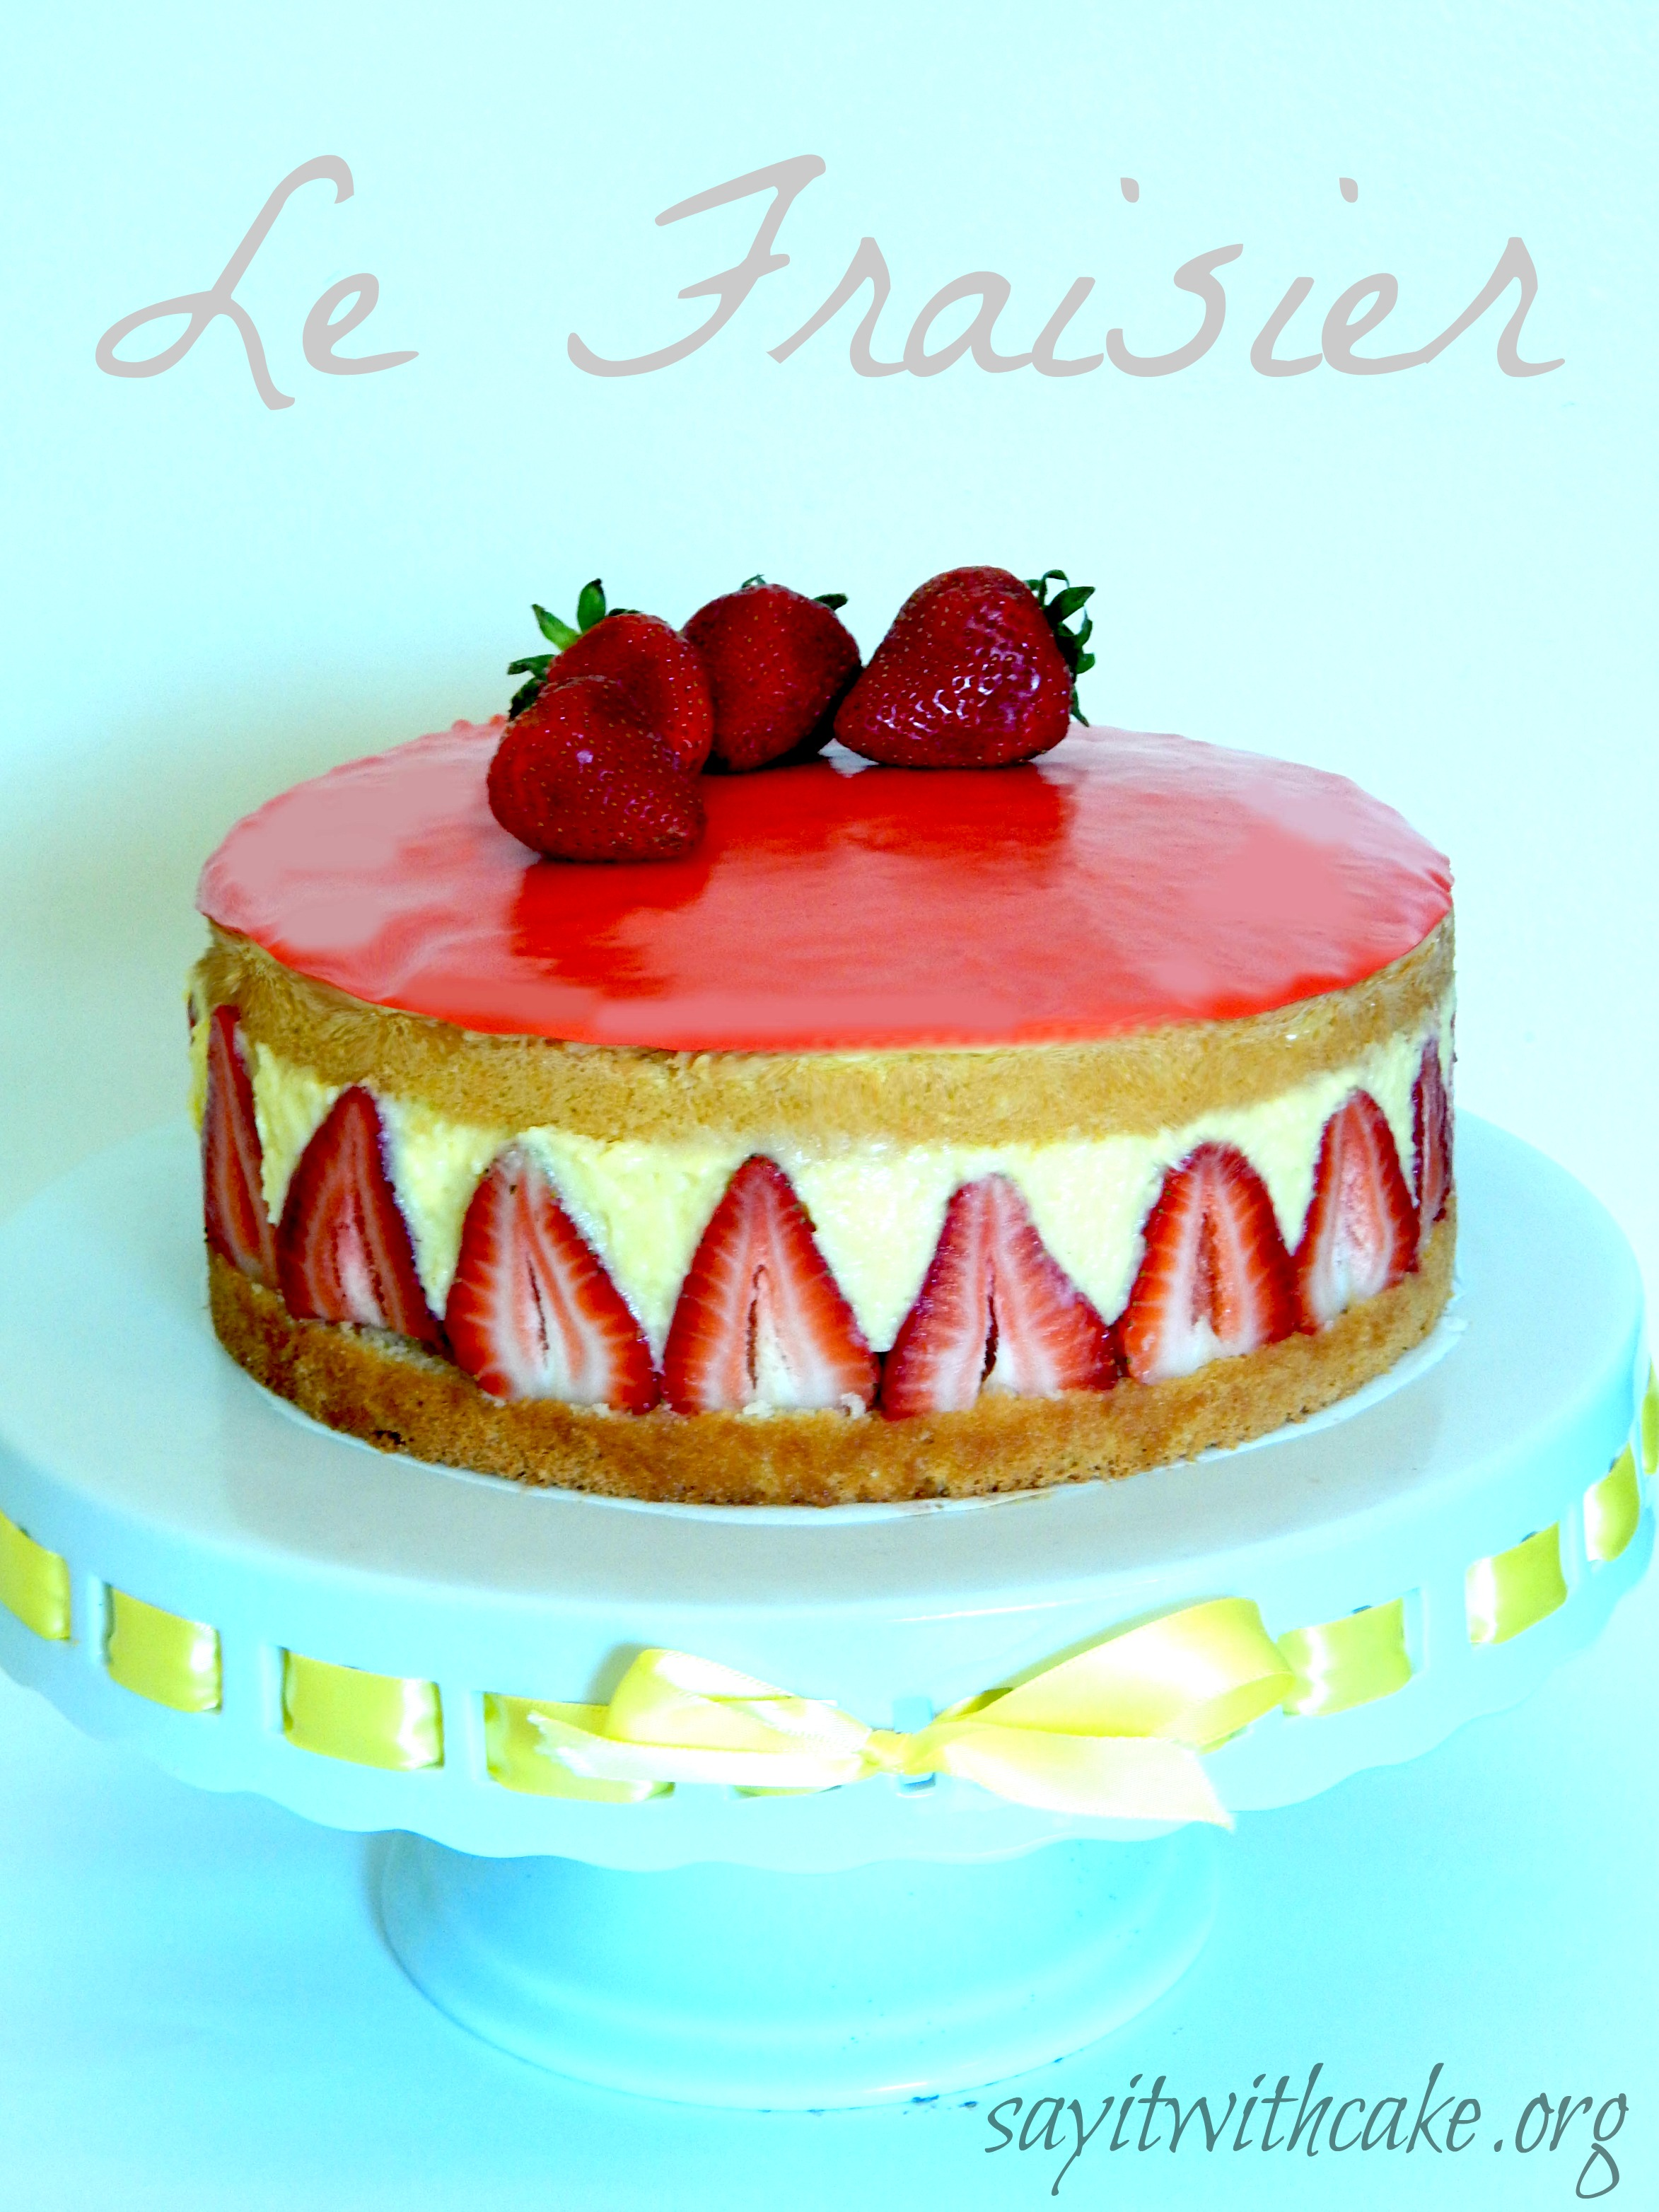 Le Fraisier Is A Cl Ic French Cake Made With A Basic Genoise Sliced In Two Halves Each Of Which Is Brushed With Kirsch